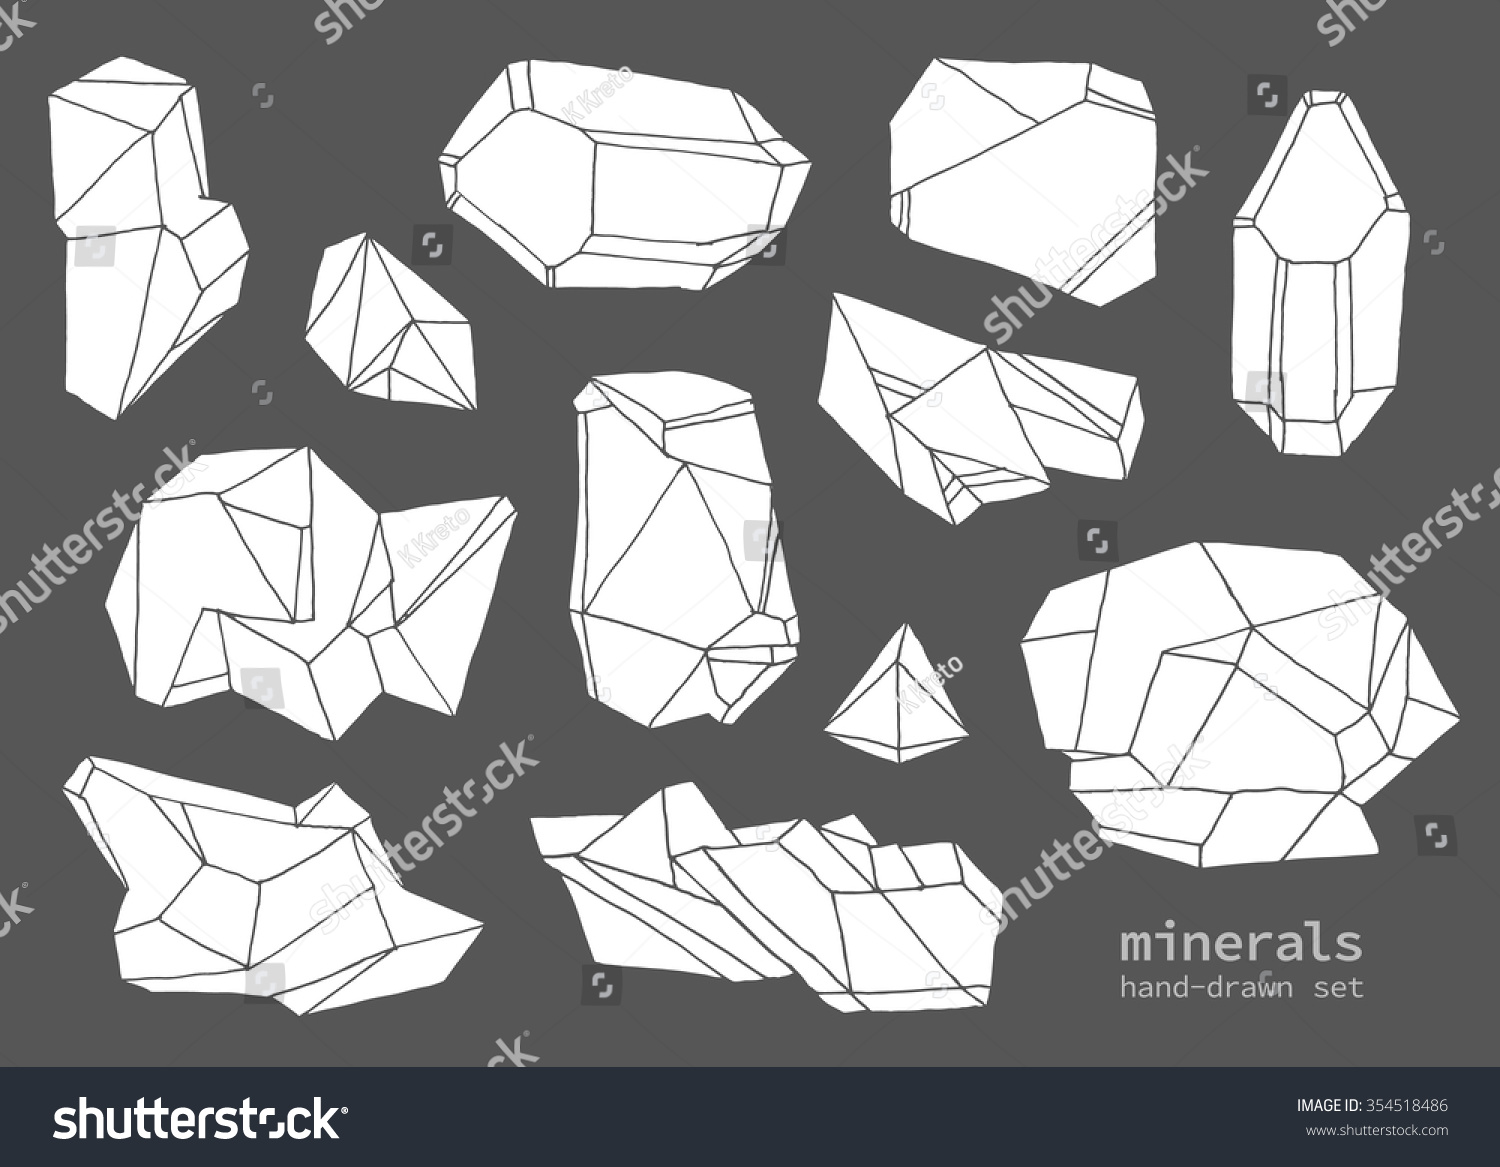 Line Drawing Vector Graphics : Set handdrawn line art polygonal crystals stock vector 354518486